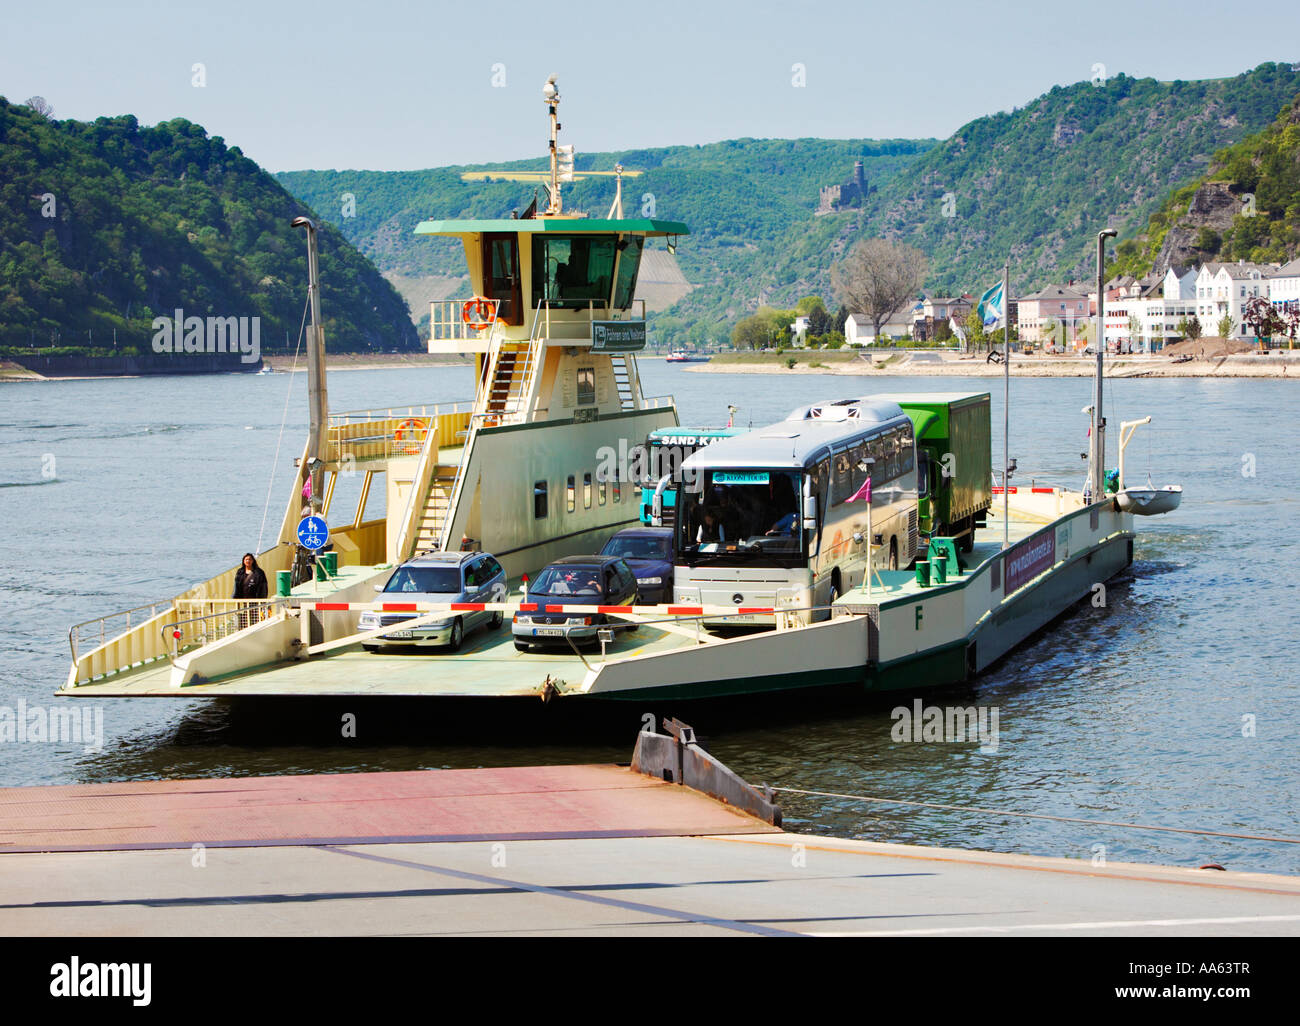 The St Goar To St Goarshausen Car Ferry Service Across The River